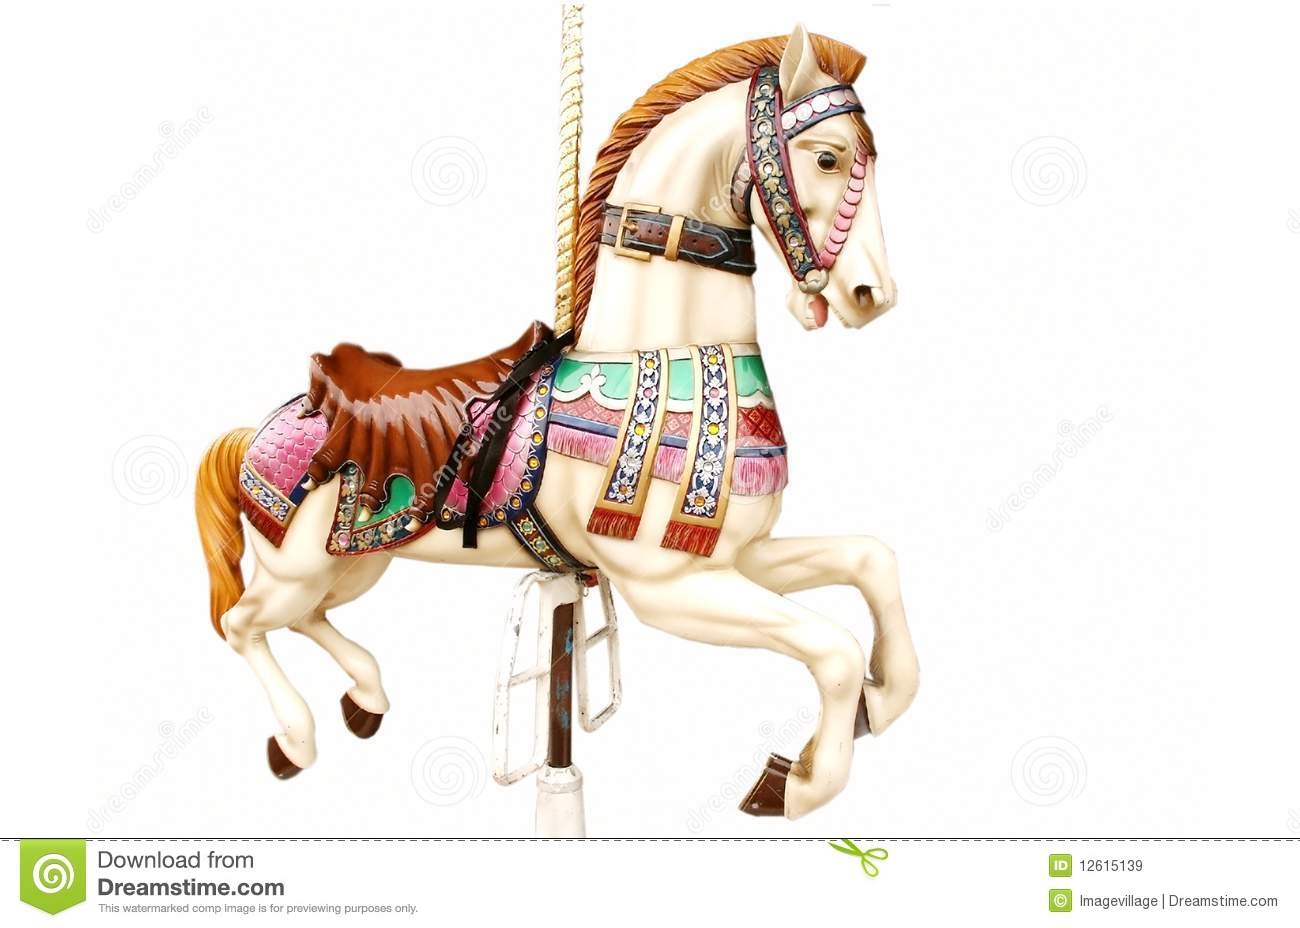 Merry-go-round horse stock image. Image of empty, isolated ...